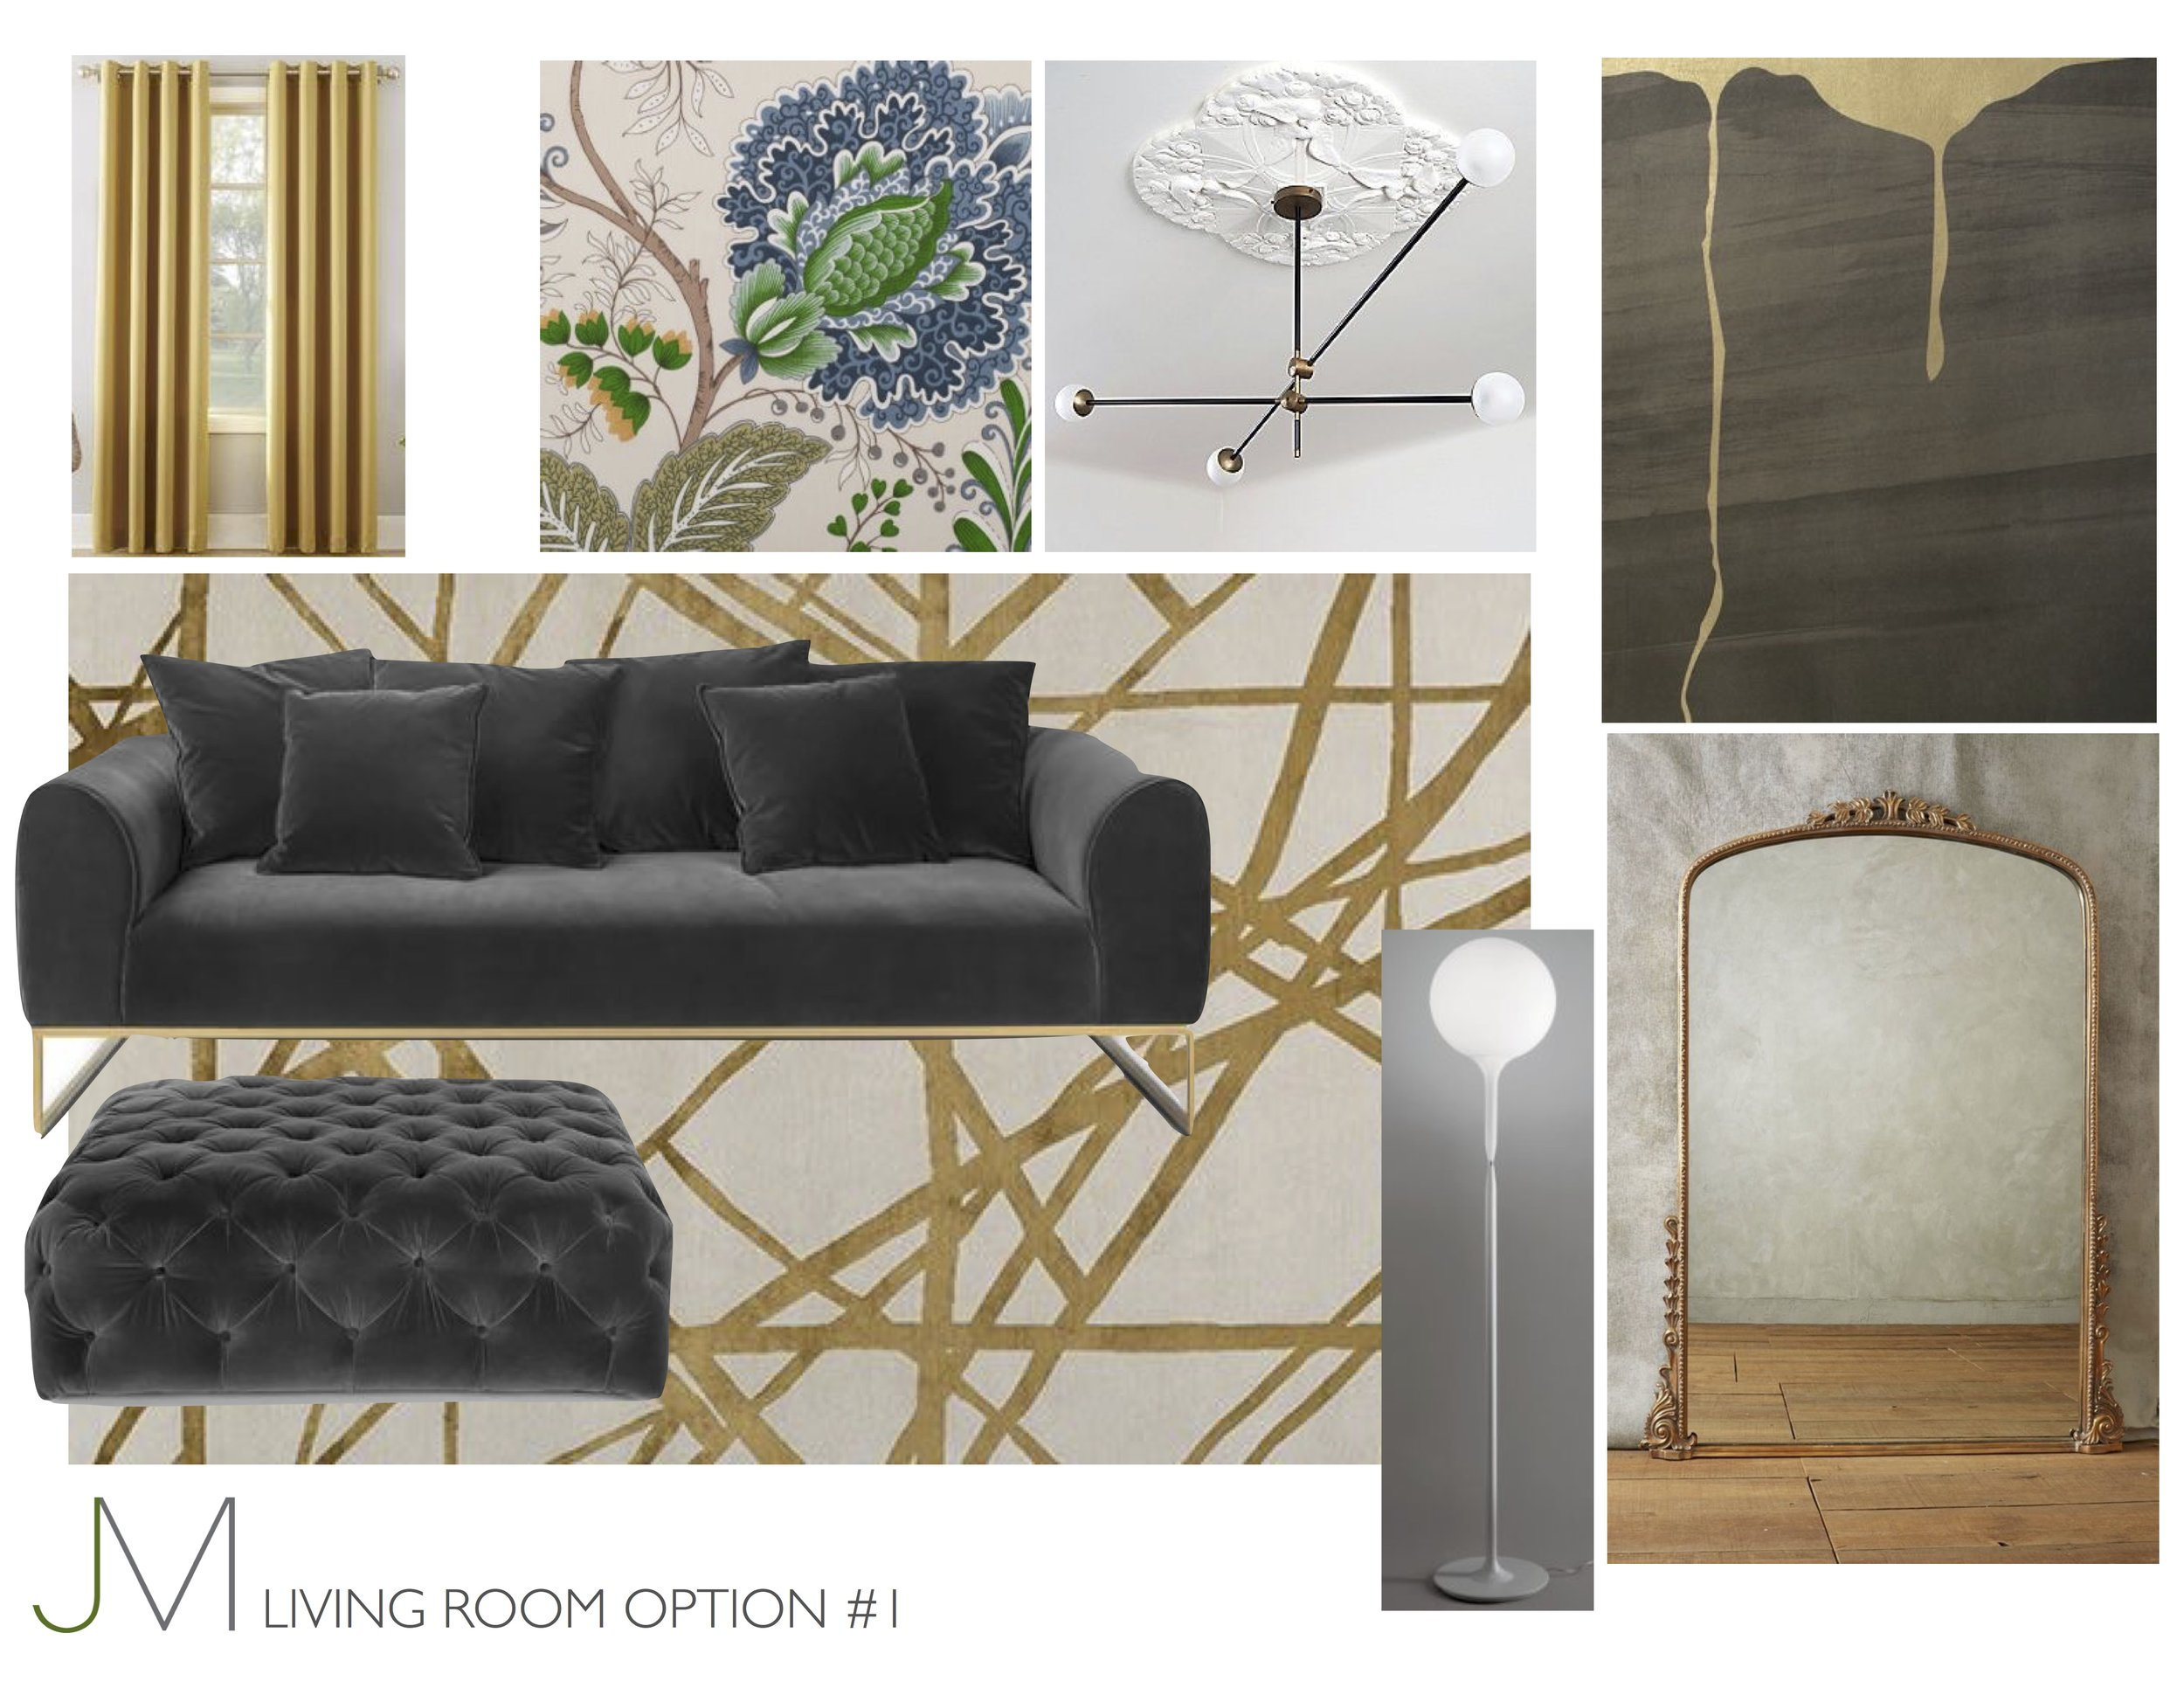 Dripping with Good Times - Sink into a deep charcoal, velvet sofa, legs up on an oversized ottoman, and gaze up at golden wallpaper while sipping on a Manhattan? Yes, please!